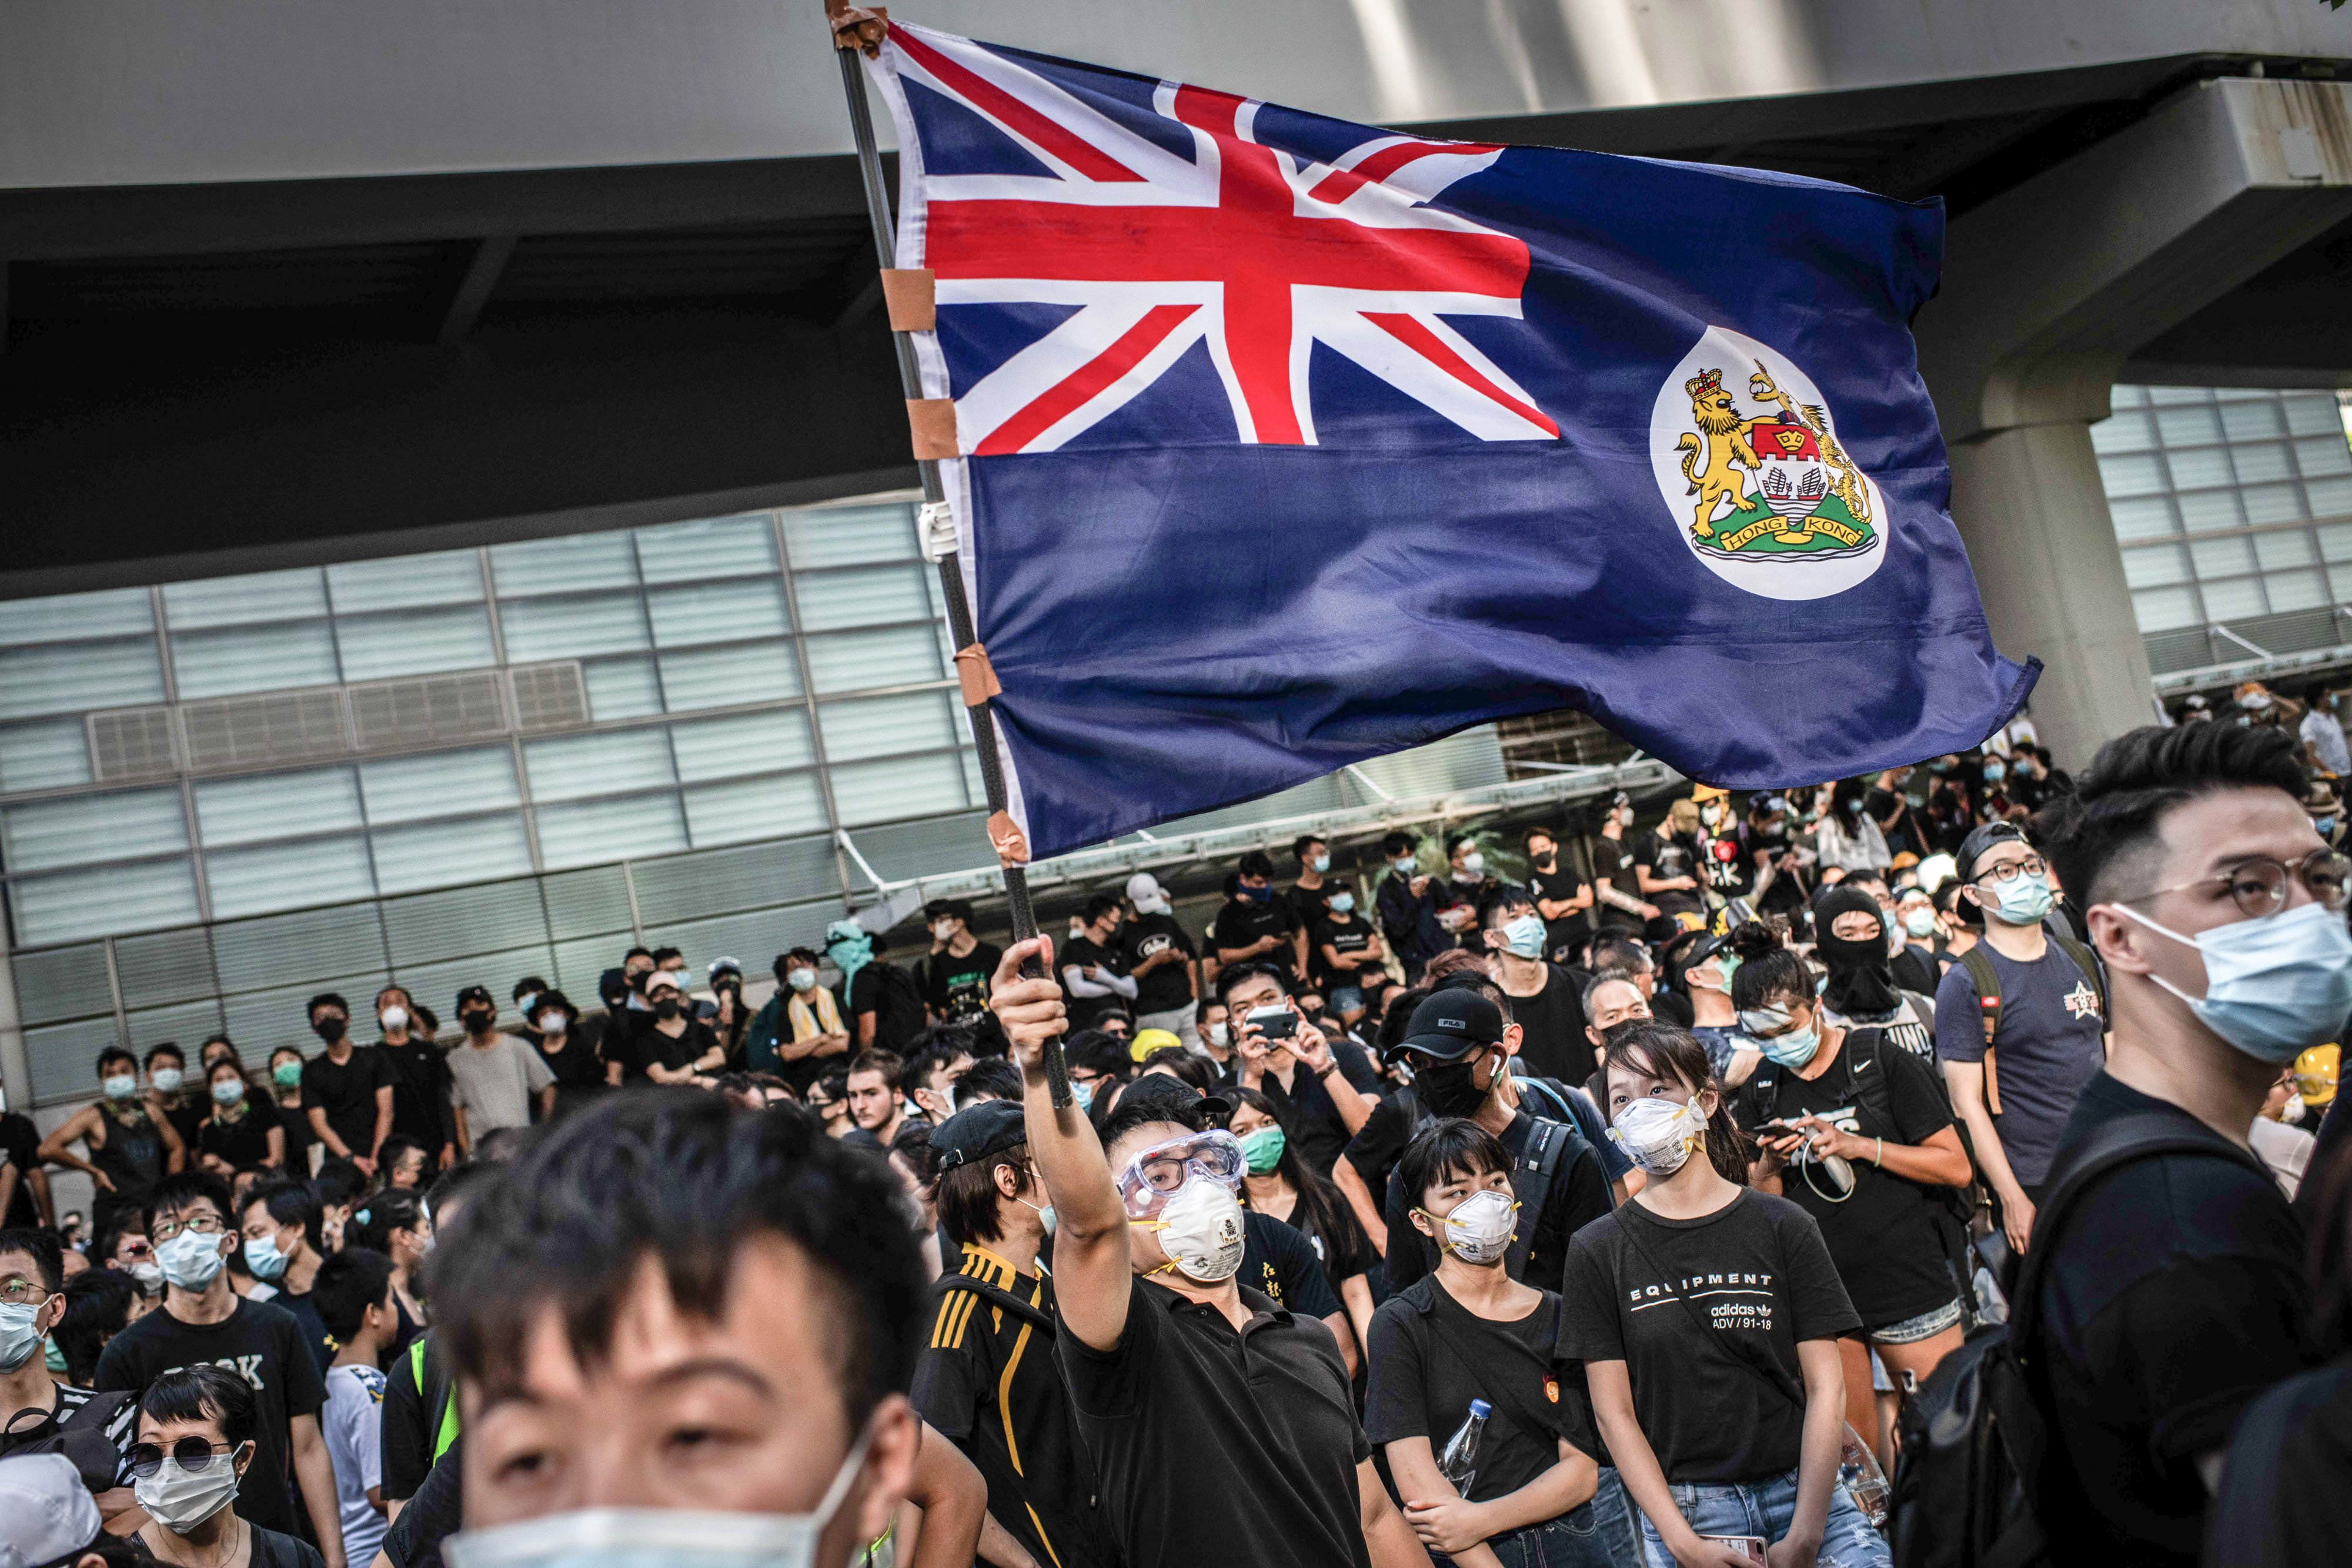 A pro-Hong Kong resolution at British university failed after Chinese student opposition